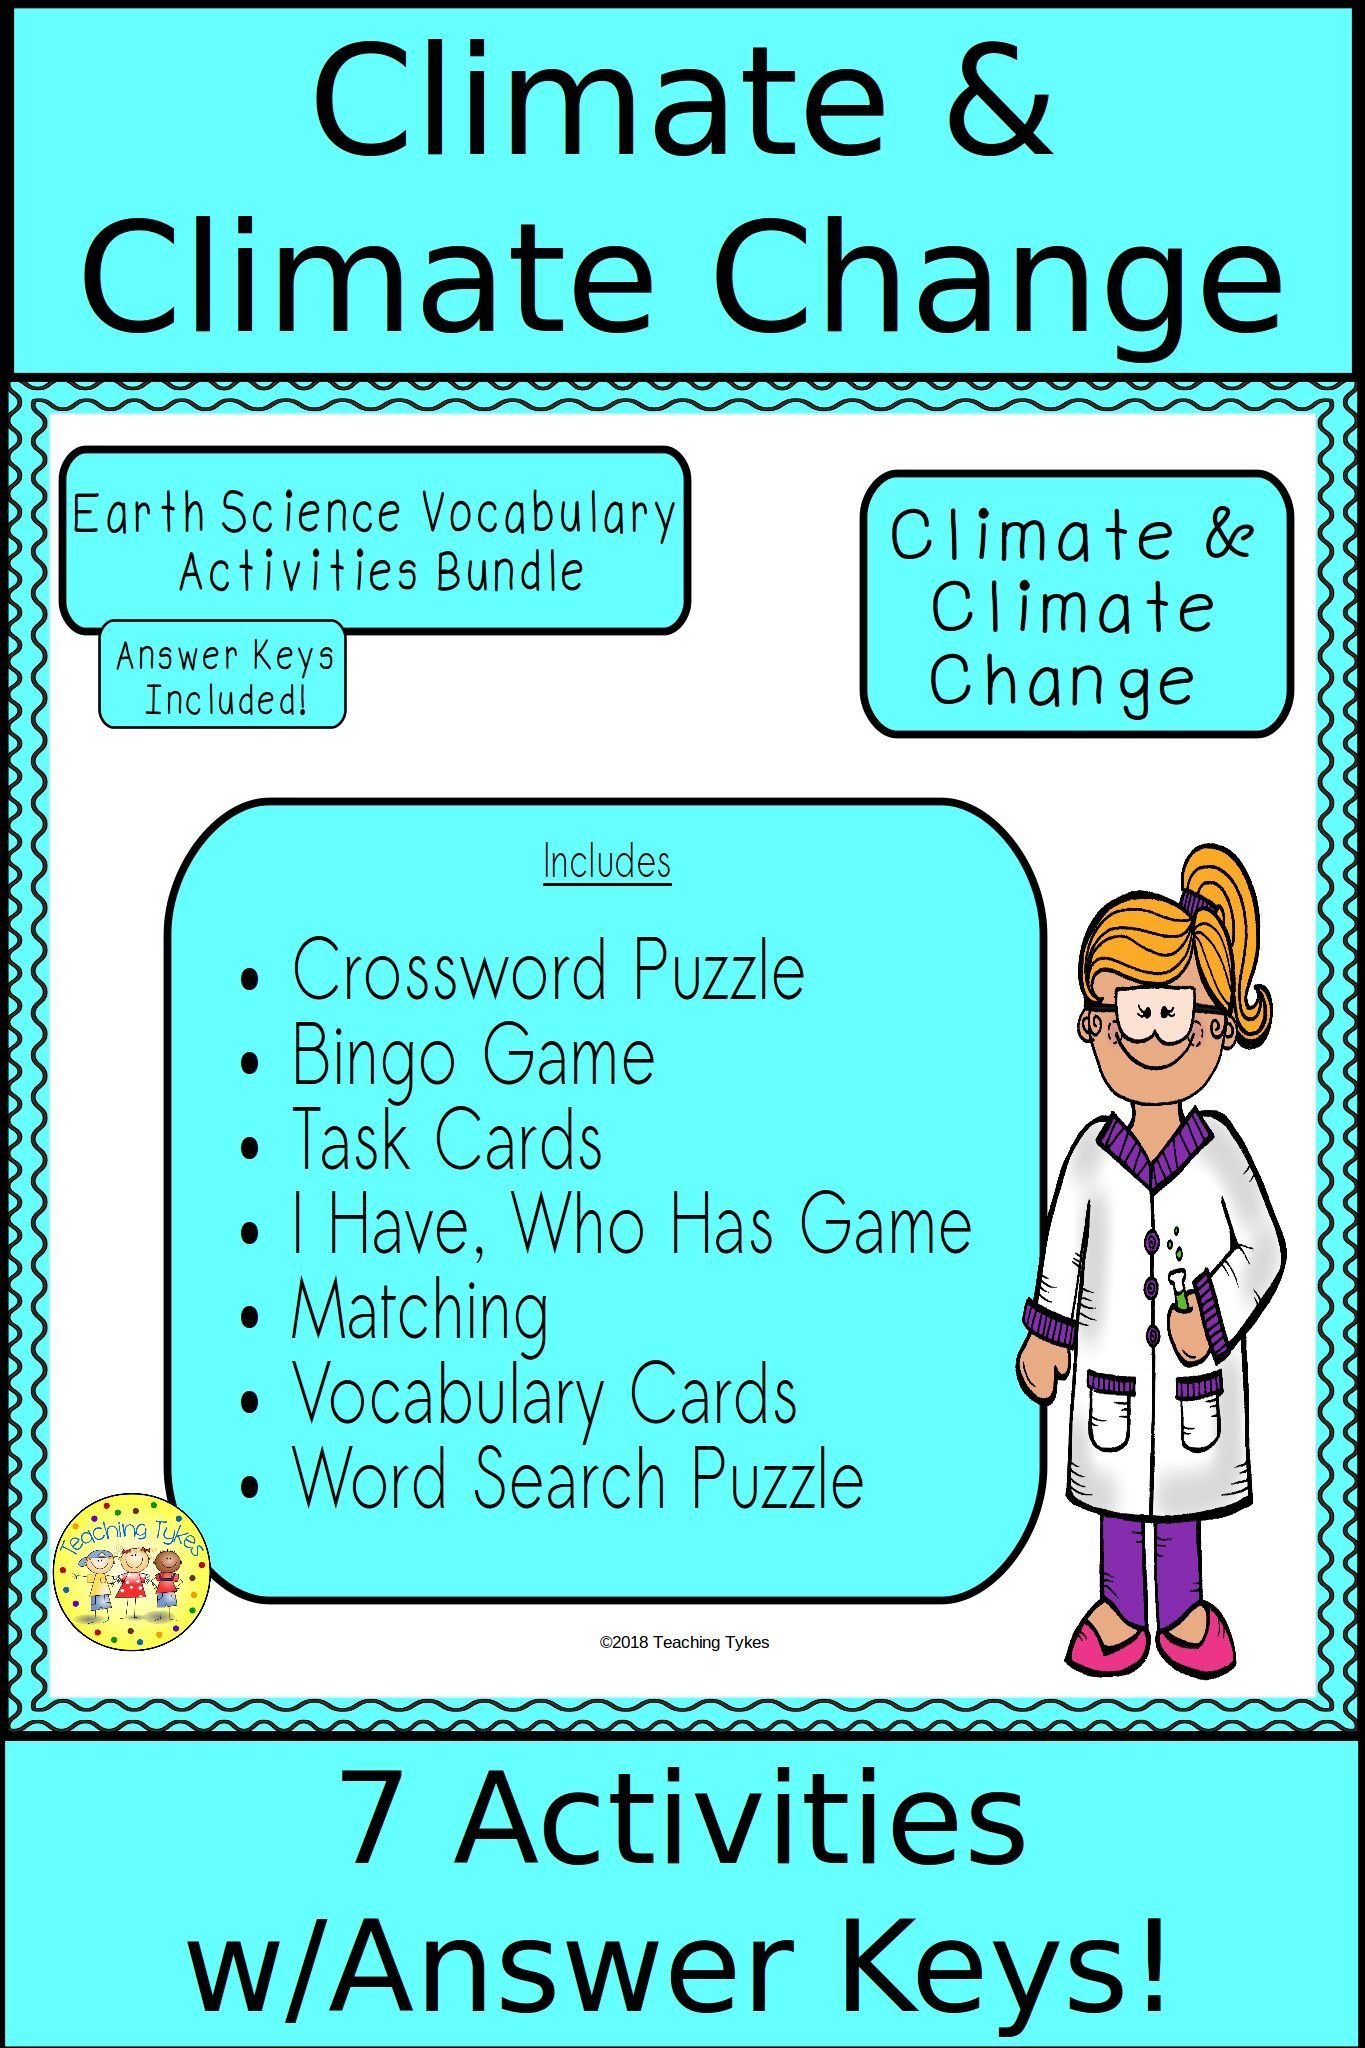 Climate And Climate Change Bundle With Images